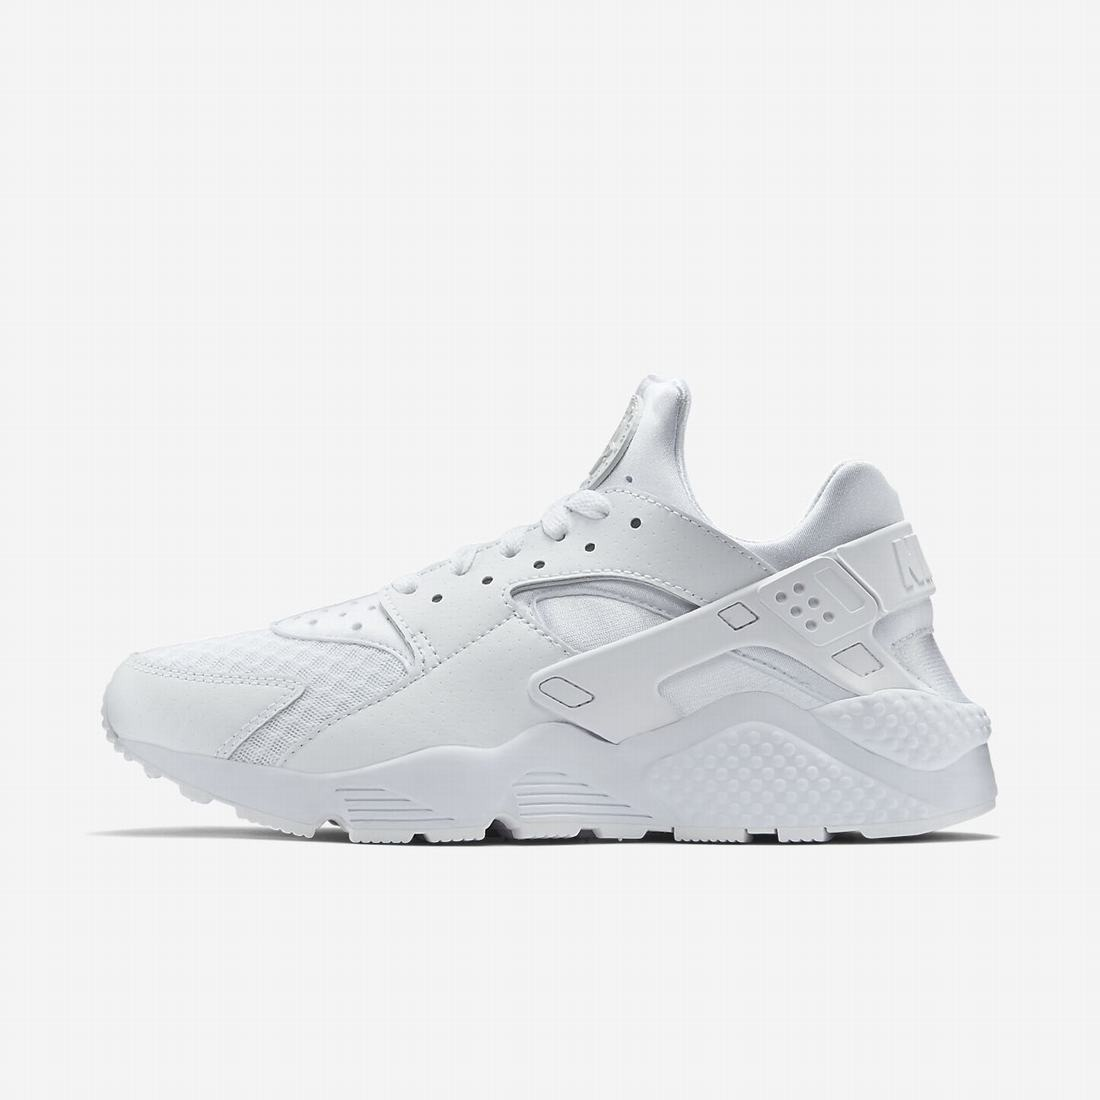 5c751dc64612 tênis nike air huarache triple white - 100% original. Carregando zoom.